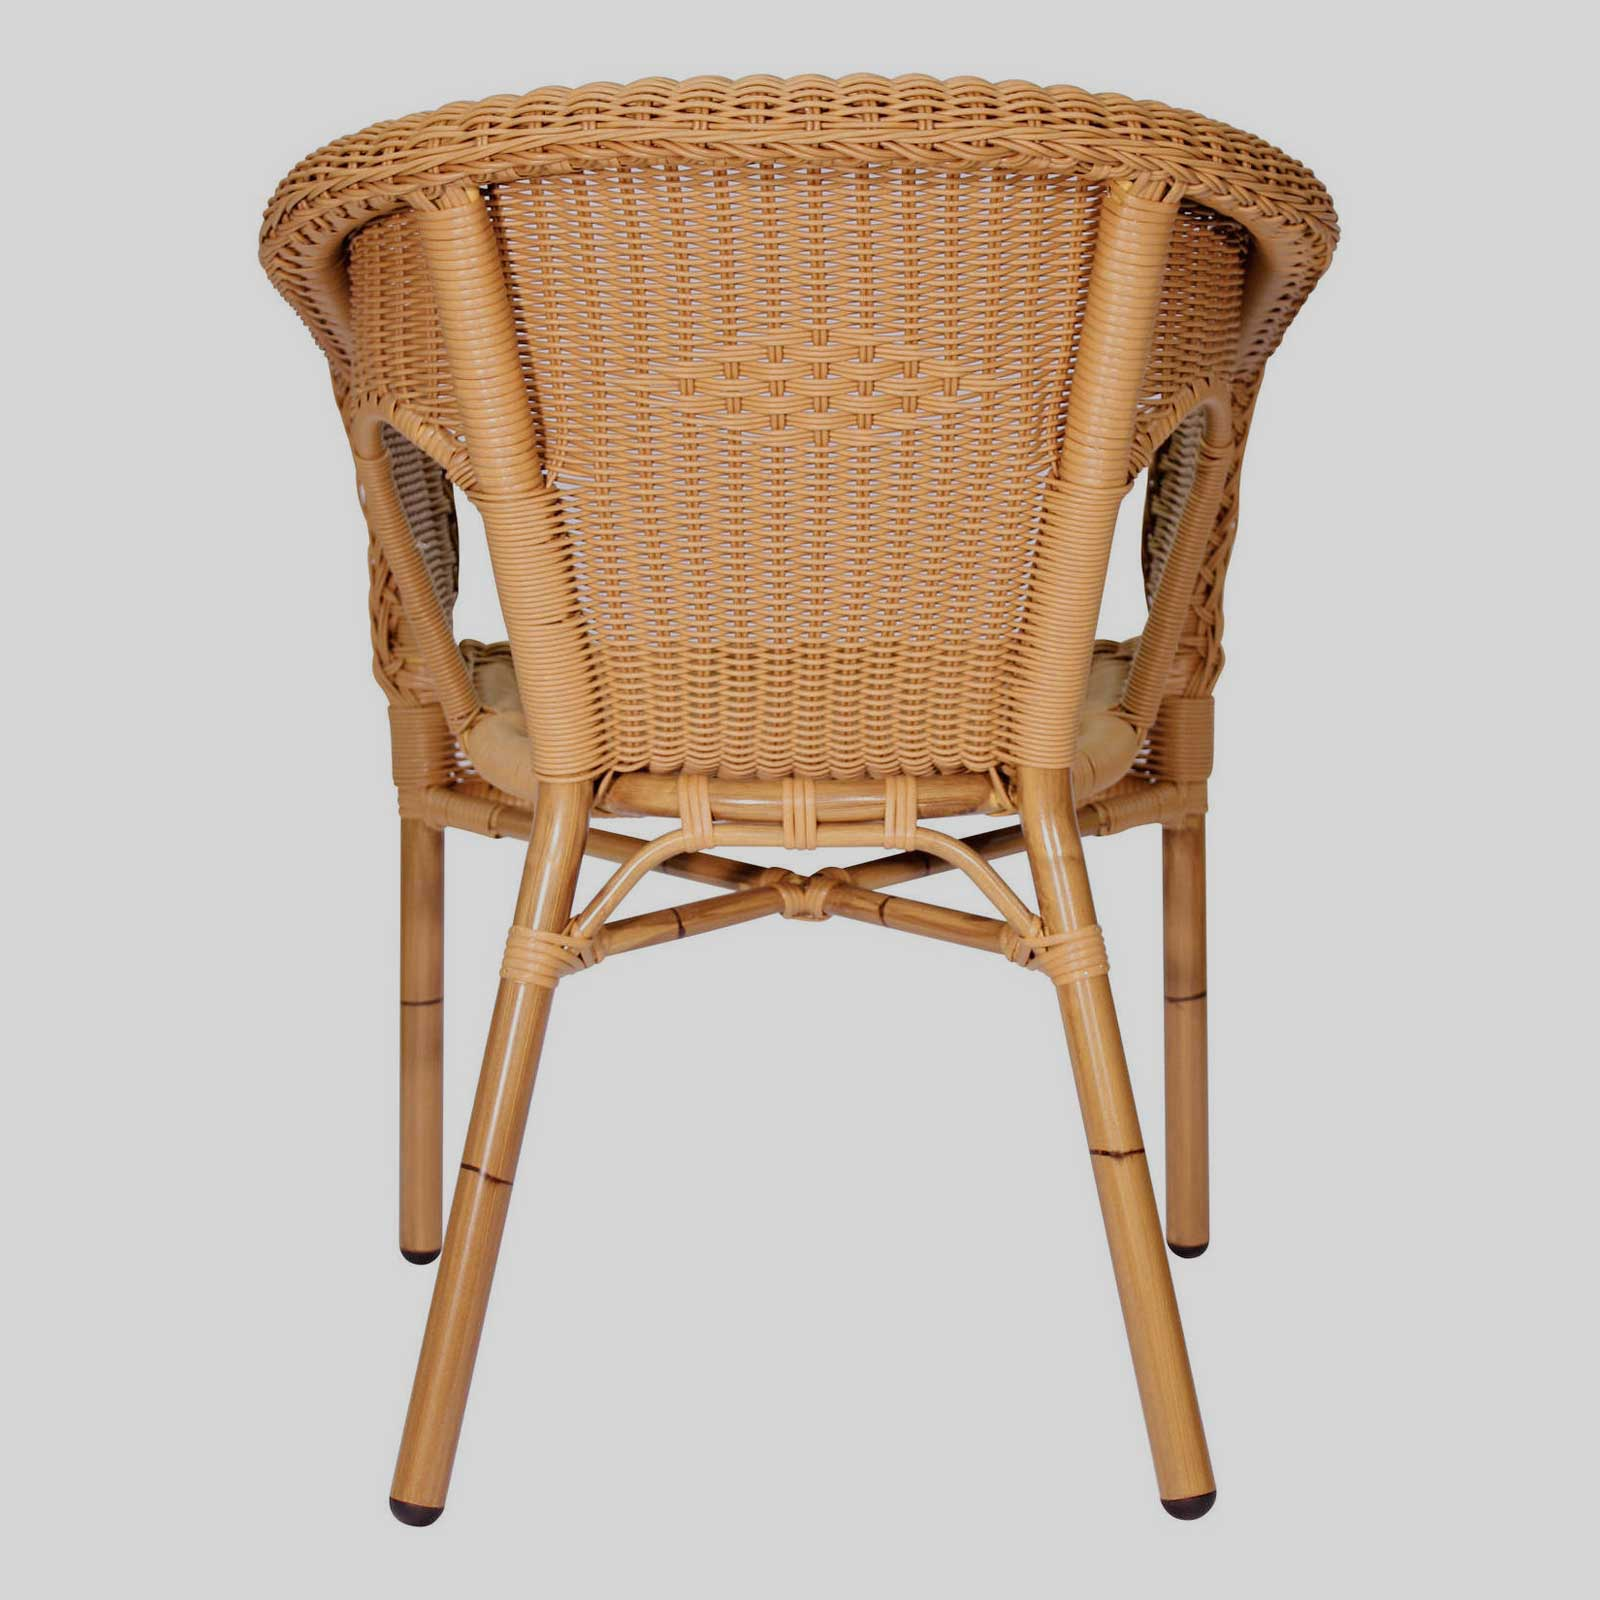 Home outdoor chairs brazil outdoor wicker armchair